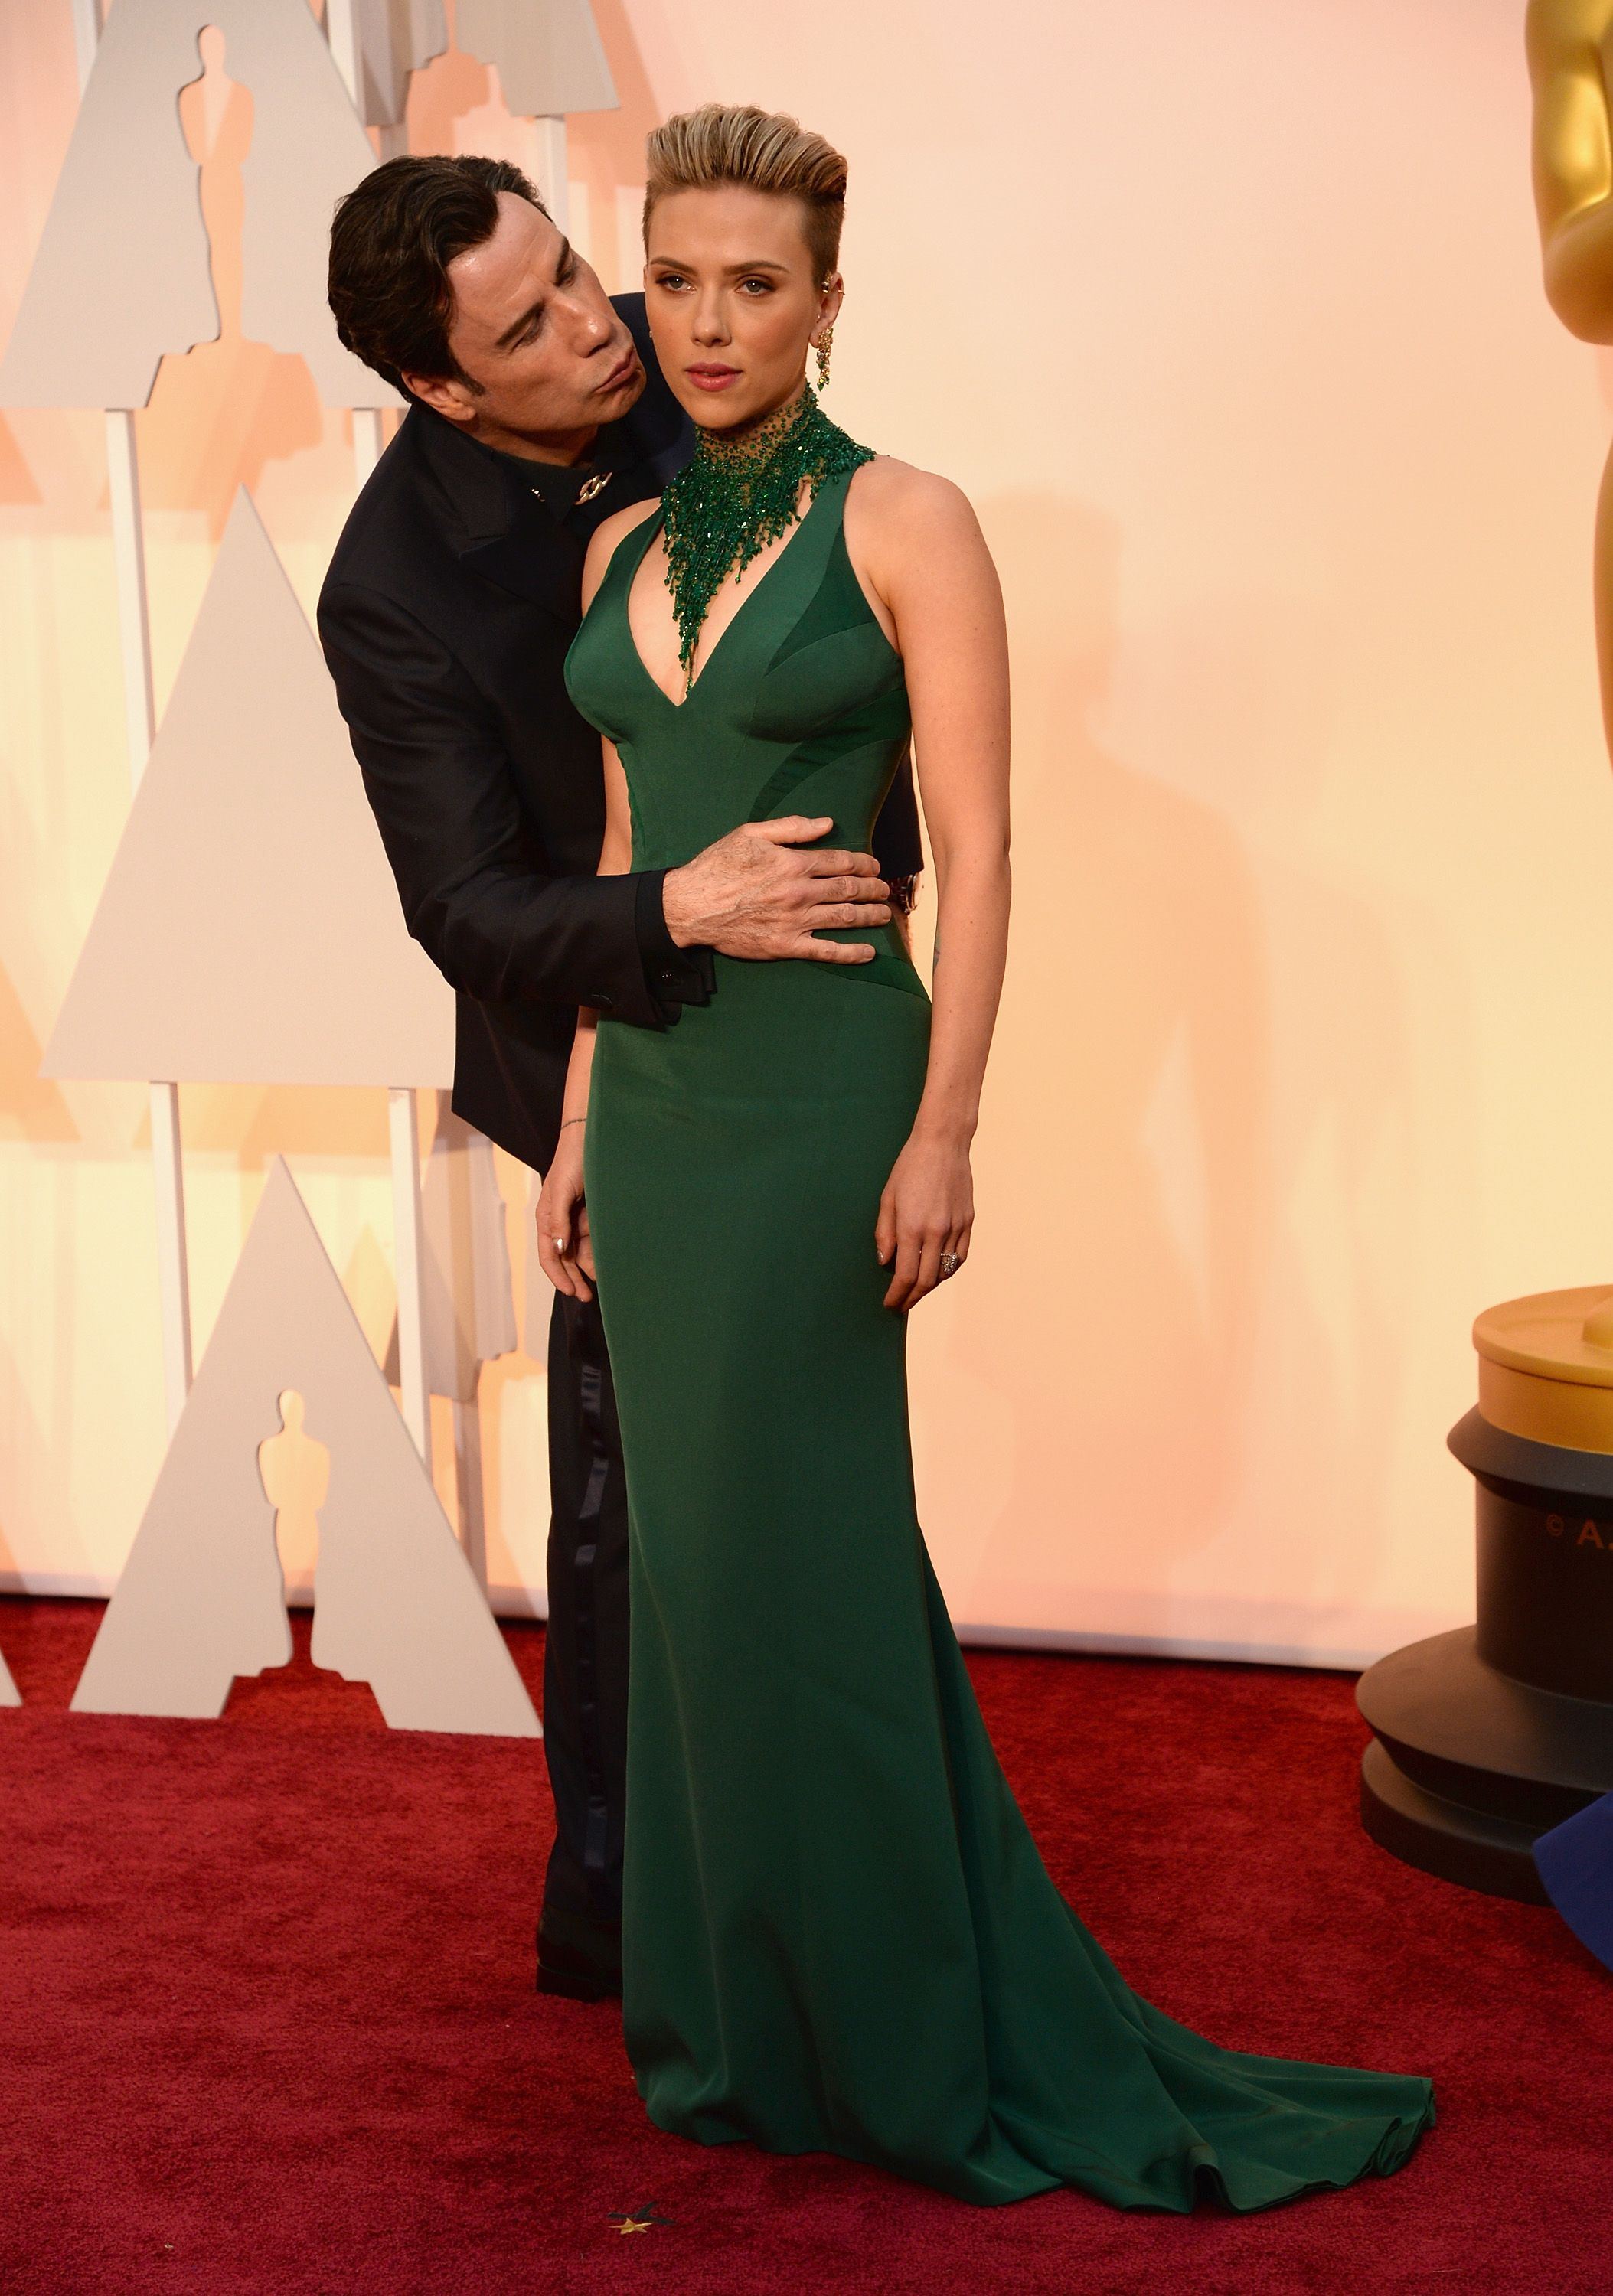 2014: When John Travolta was weird with Scarlett Johansson. Despite Johansson's captured reaction in this photo, the actress said Travolta's Oscar kisses were more than acceptable .